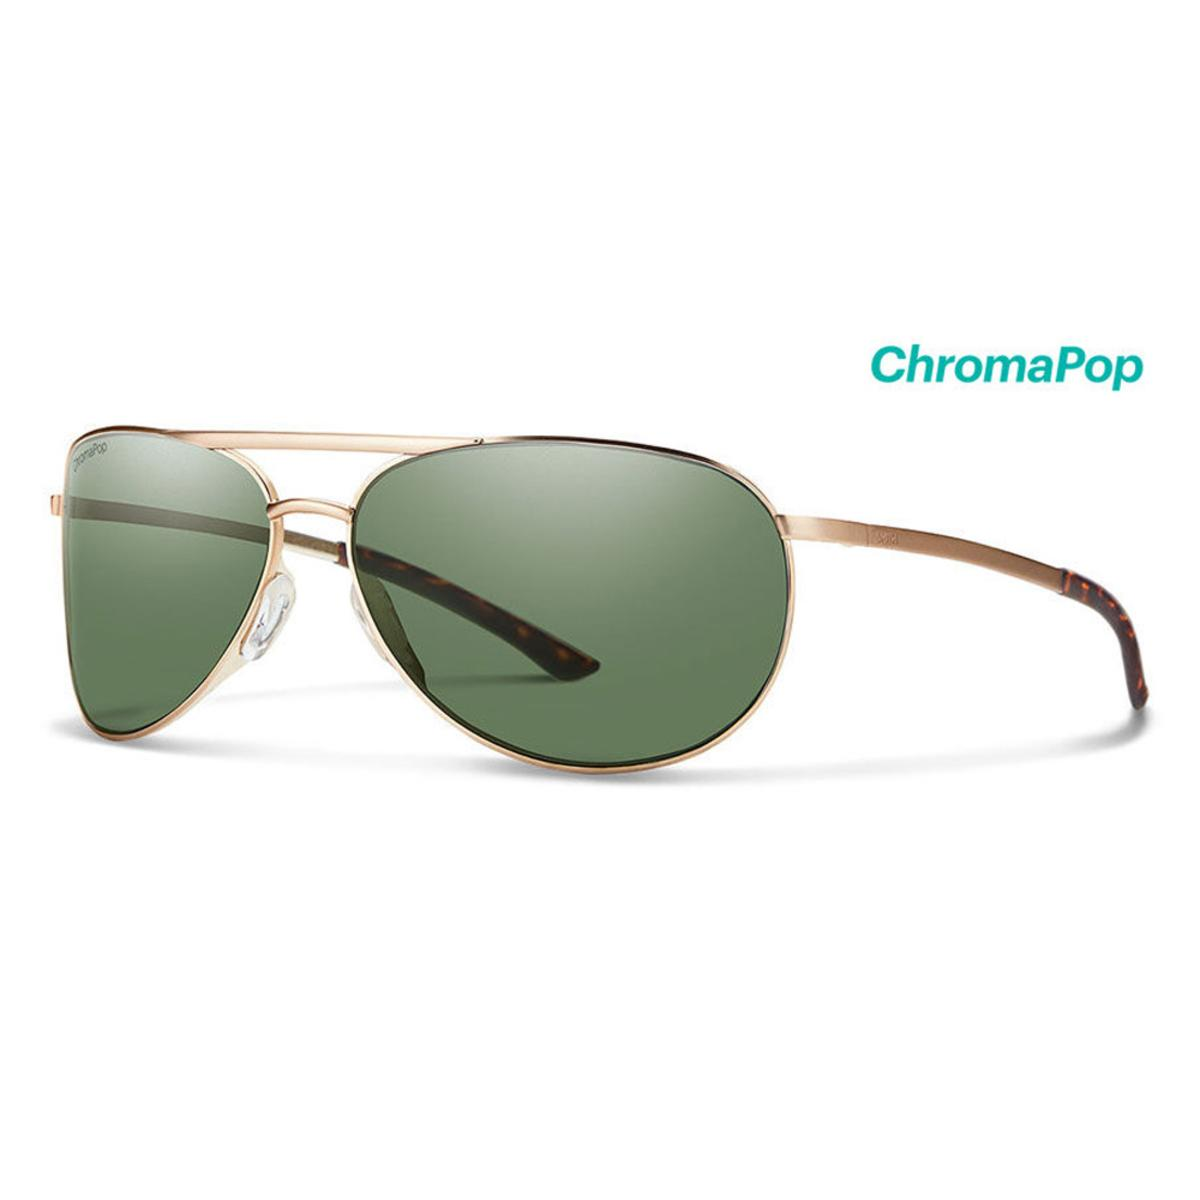 Smith Optics Serpico Slim 2 Sunglasses Chromapop Polarized Gray Green - Matte Gold Frame